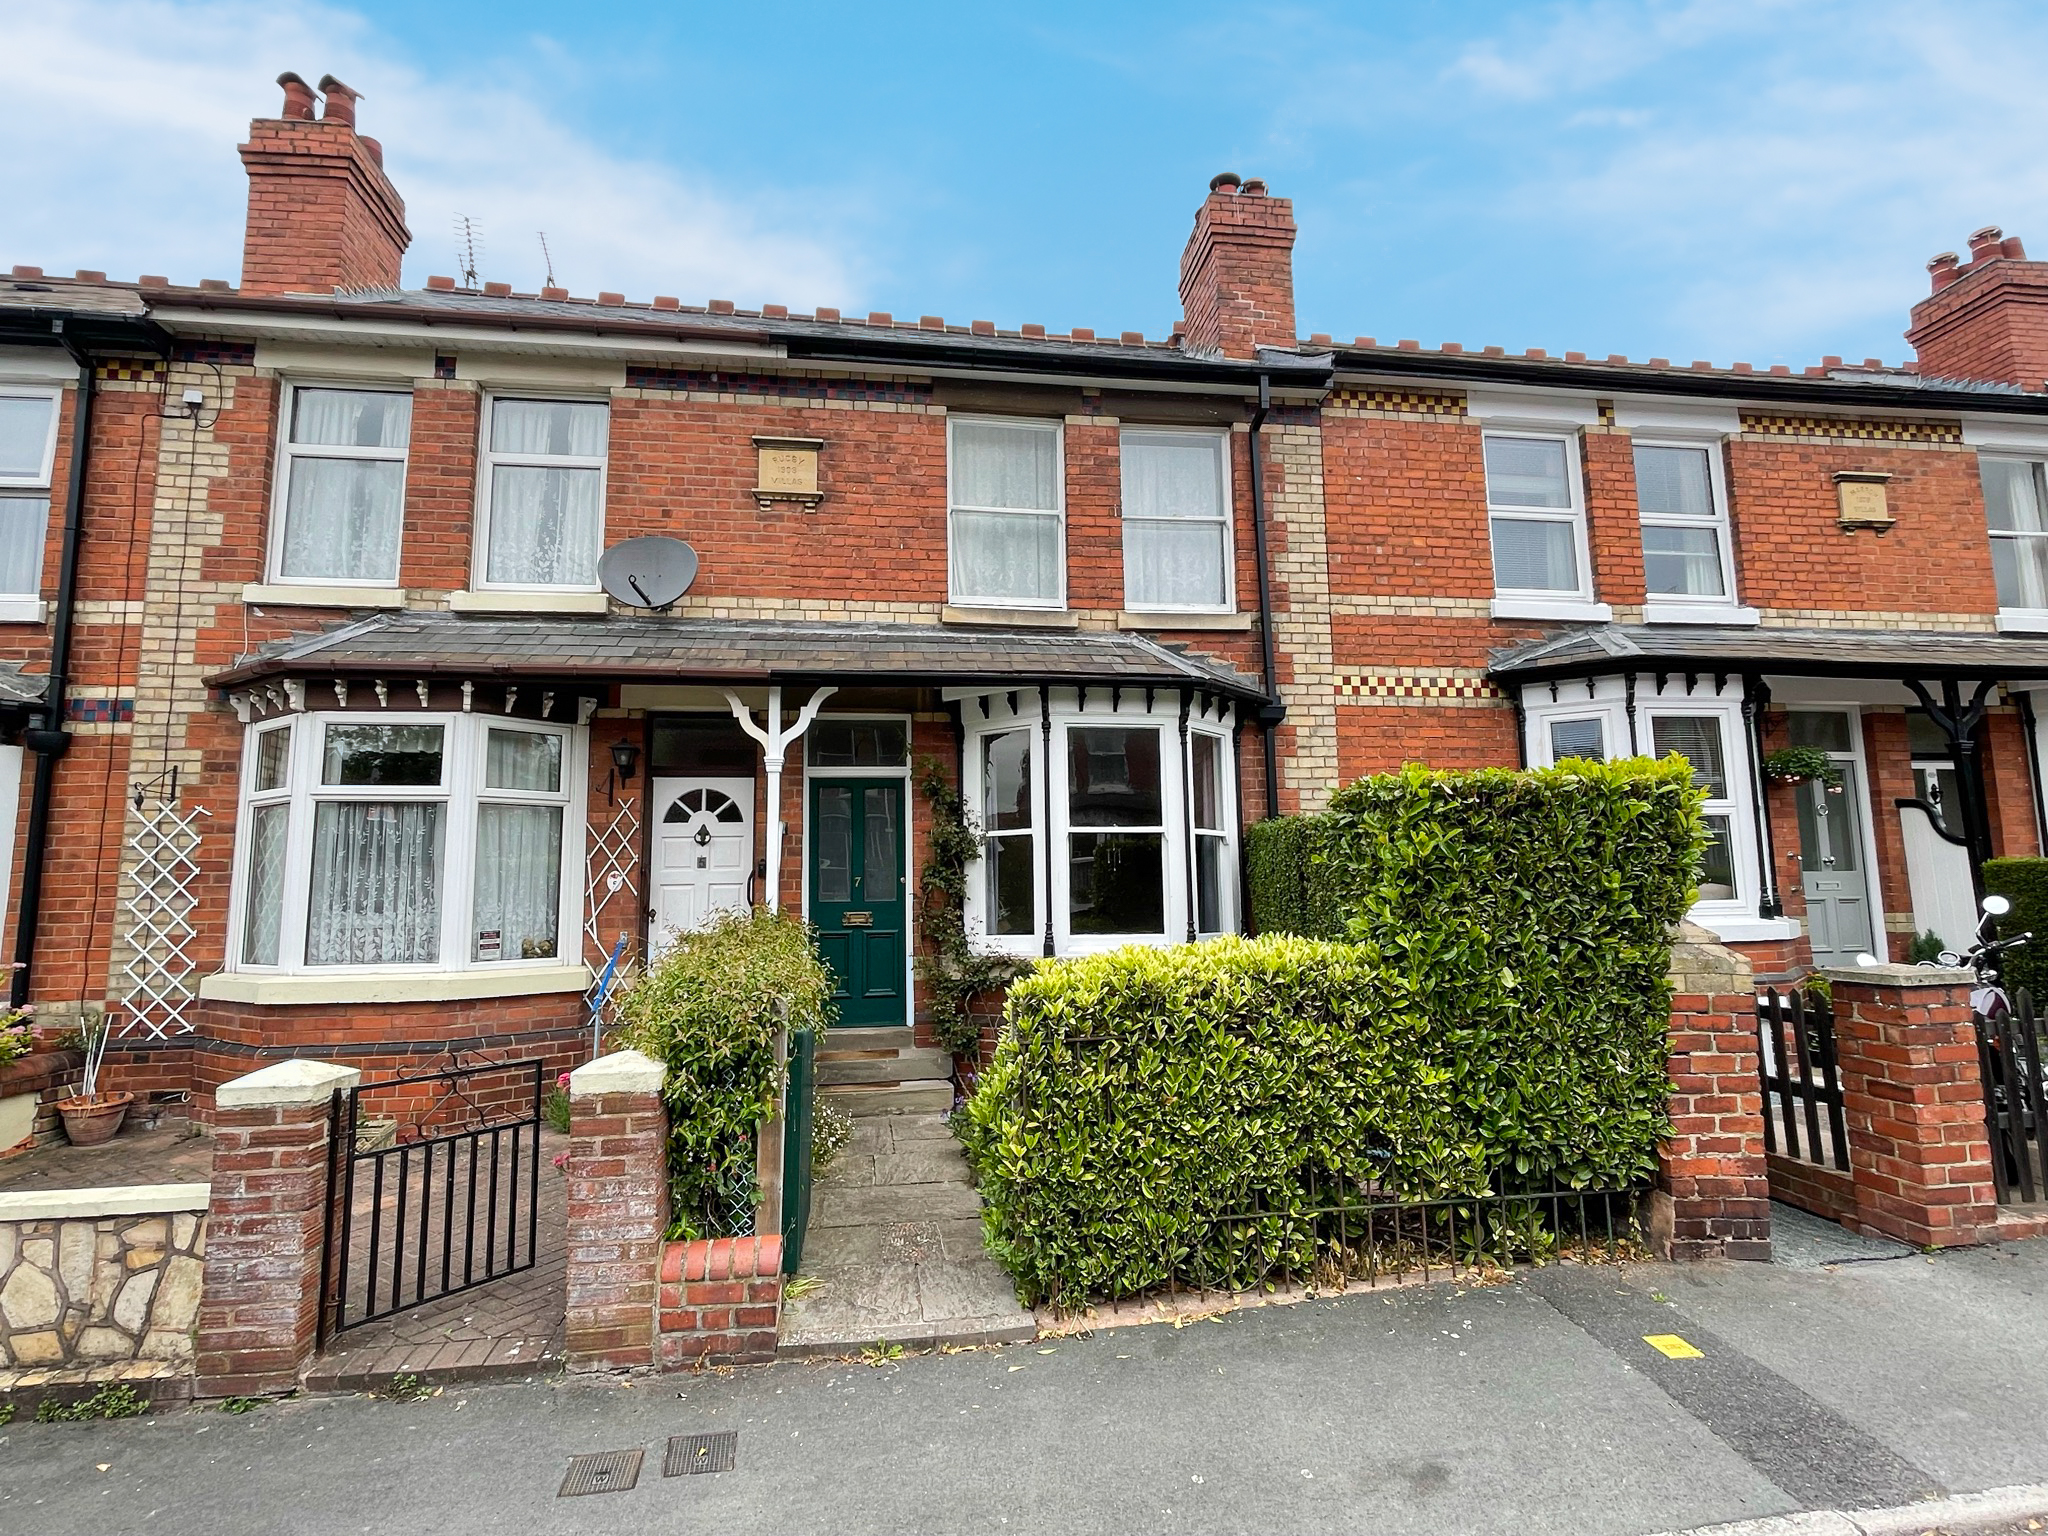 Hopton Road, Off Barrs Court Road, Hereford